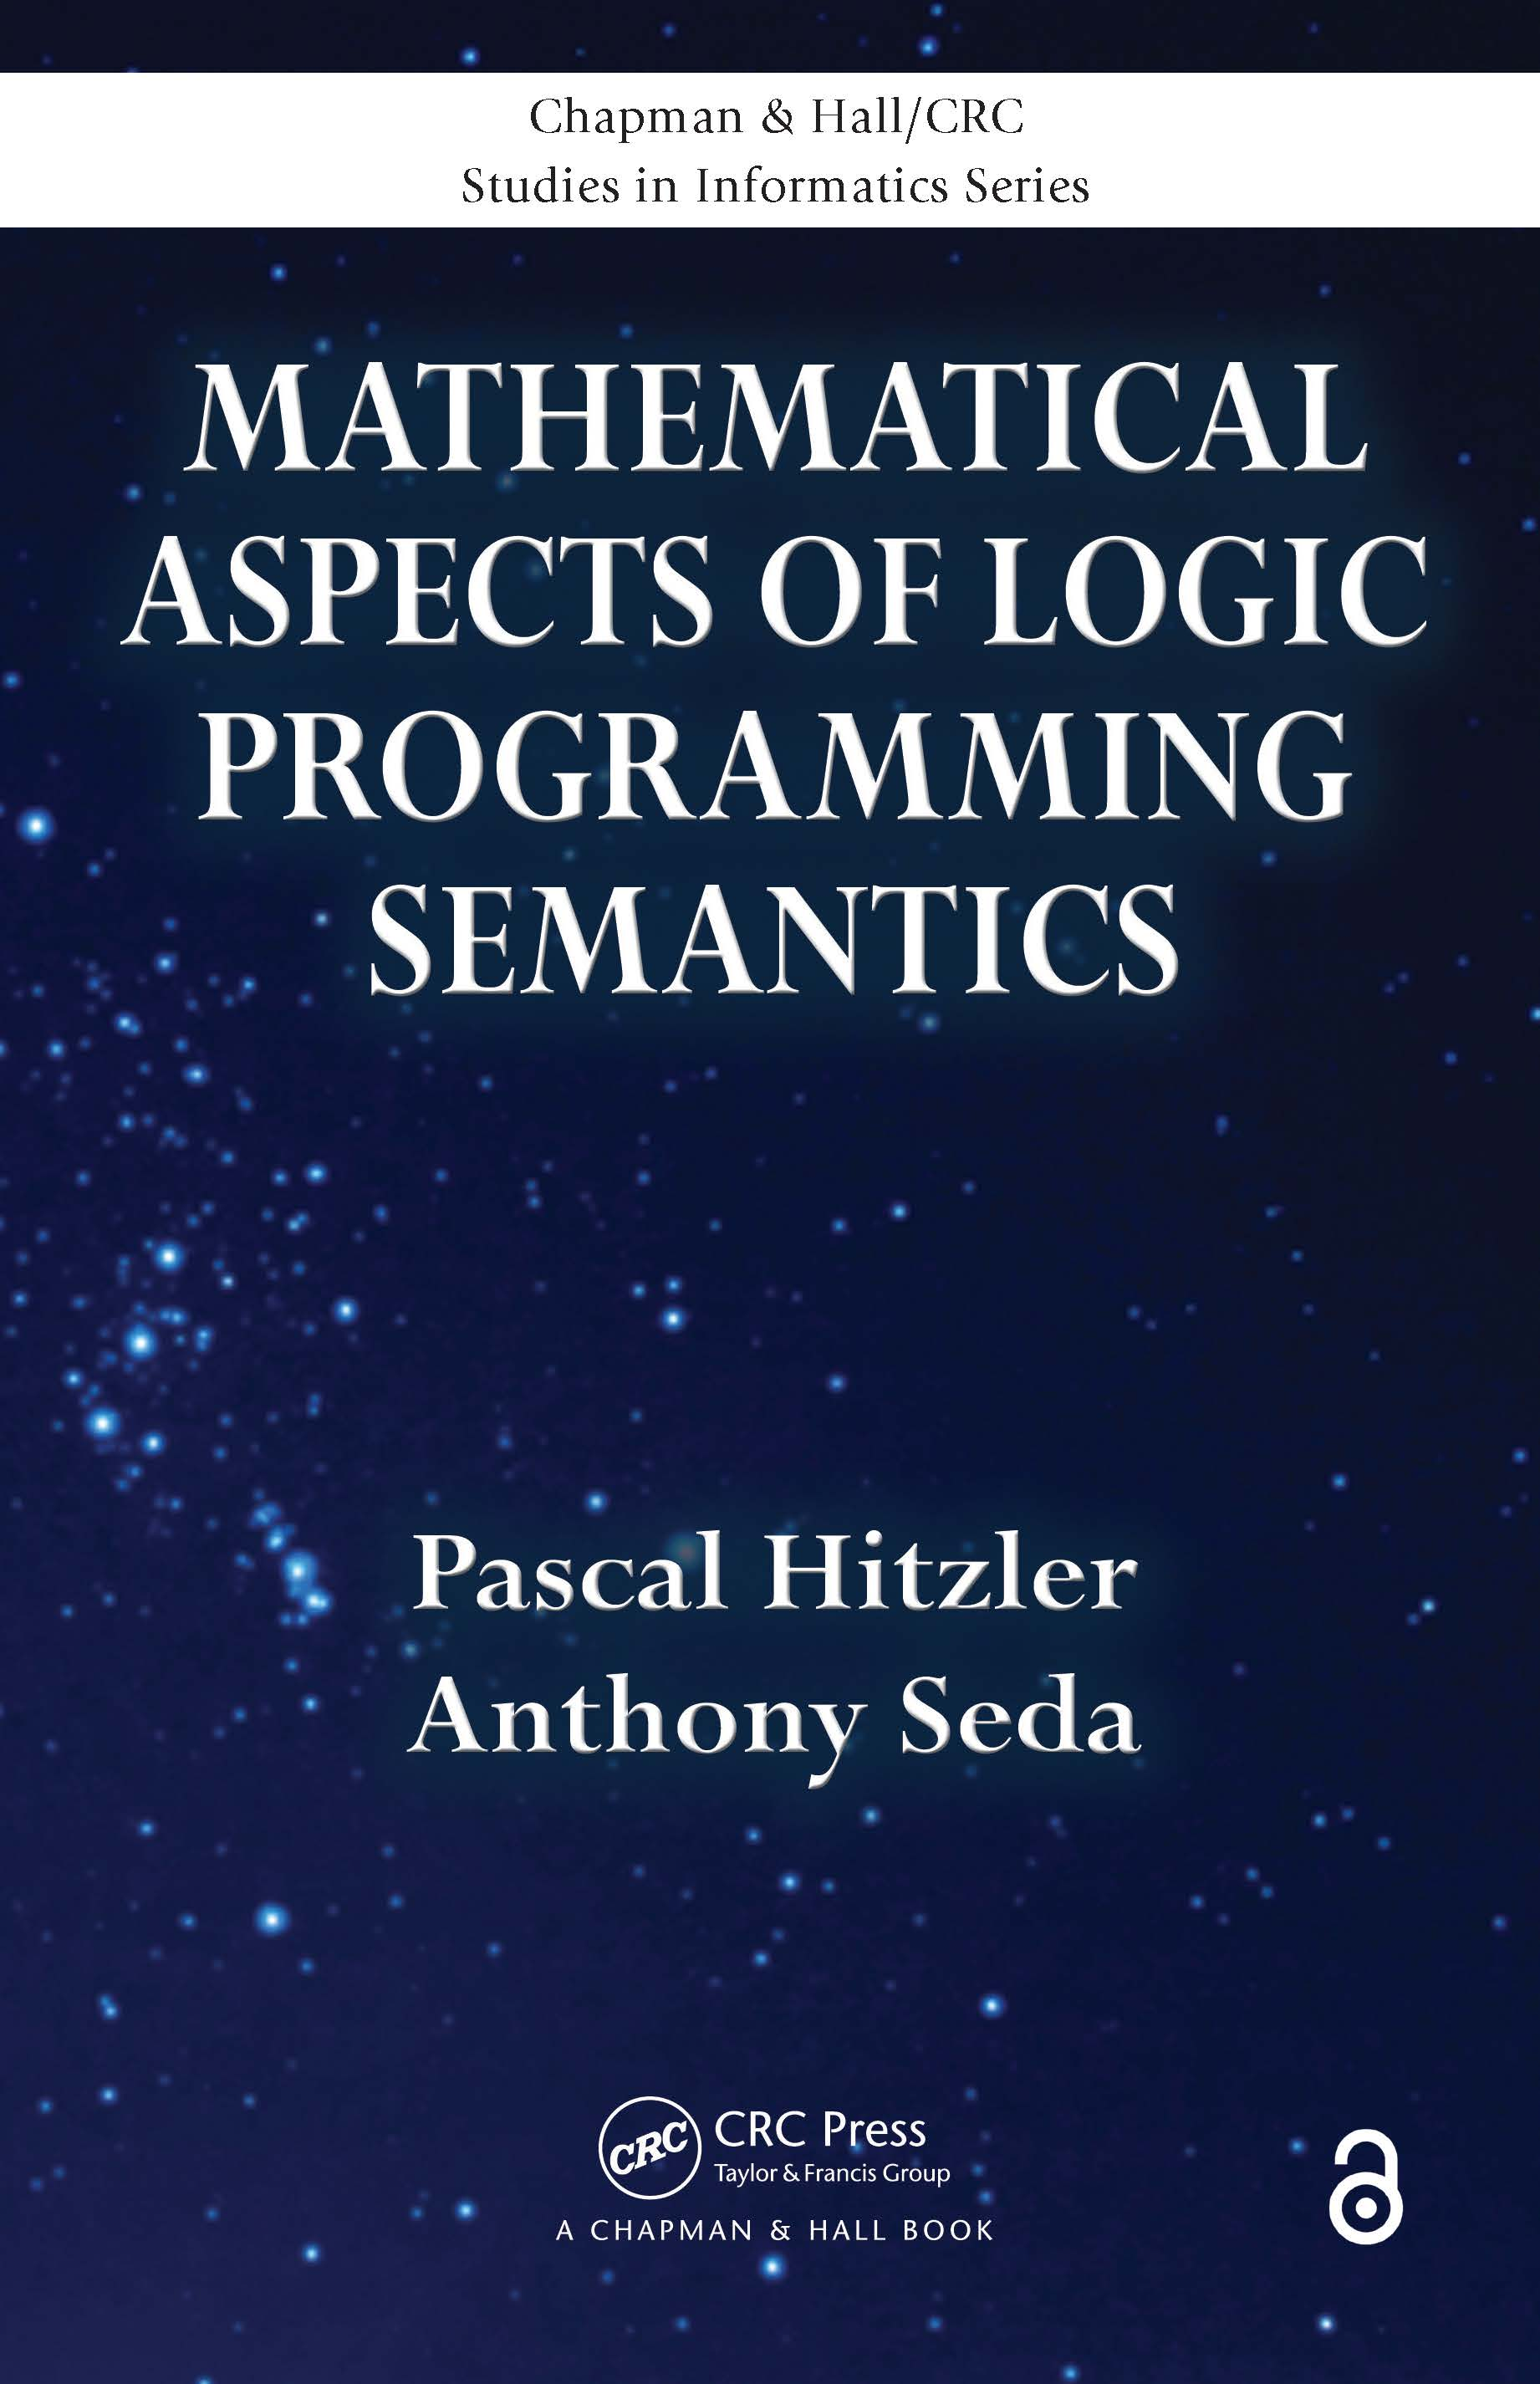 Mathematical Aspects of Logic Programming Semantics book cover